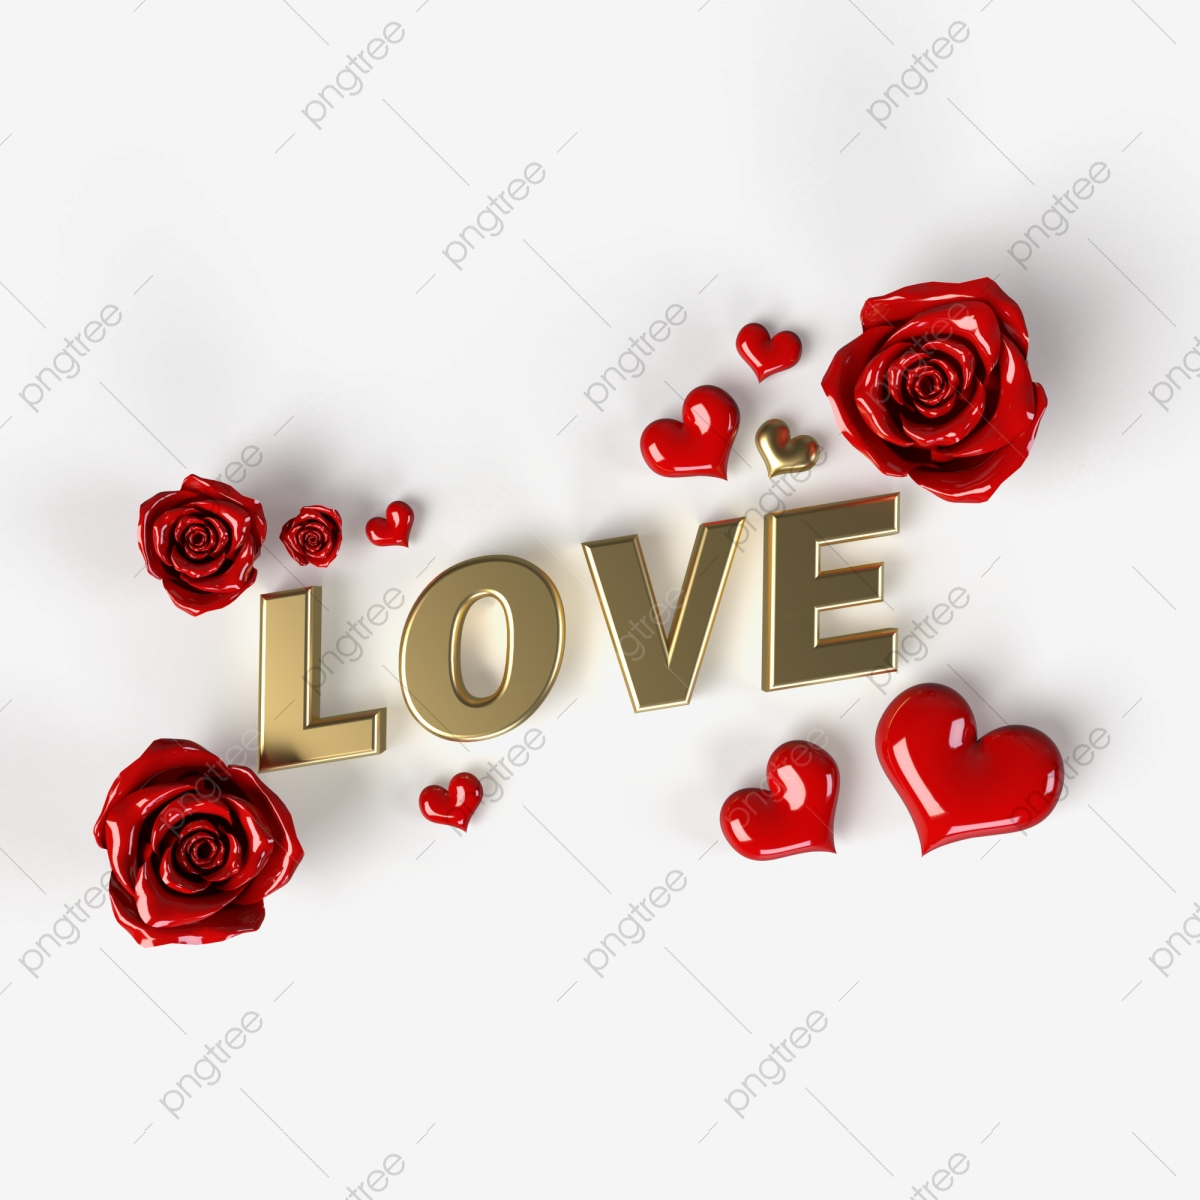 Love Text With Red Hearts And Roses Isolated On Transparent Background 3d Visualization Celebrate Er Gift Png Transparent Clipart Image And Psd File For Free Download